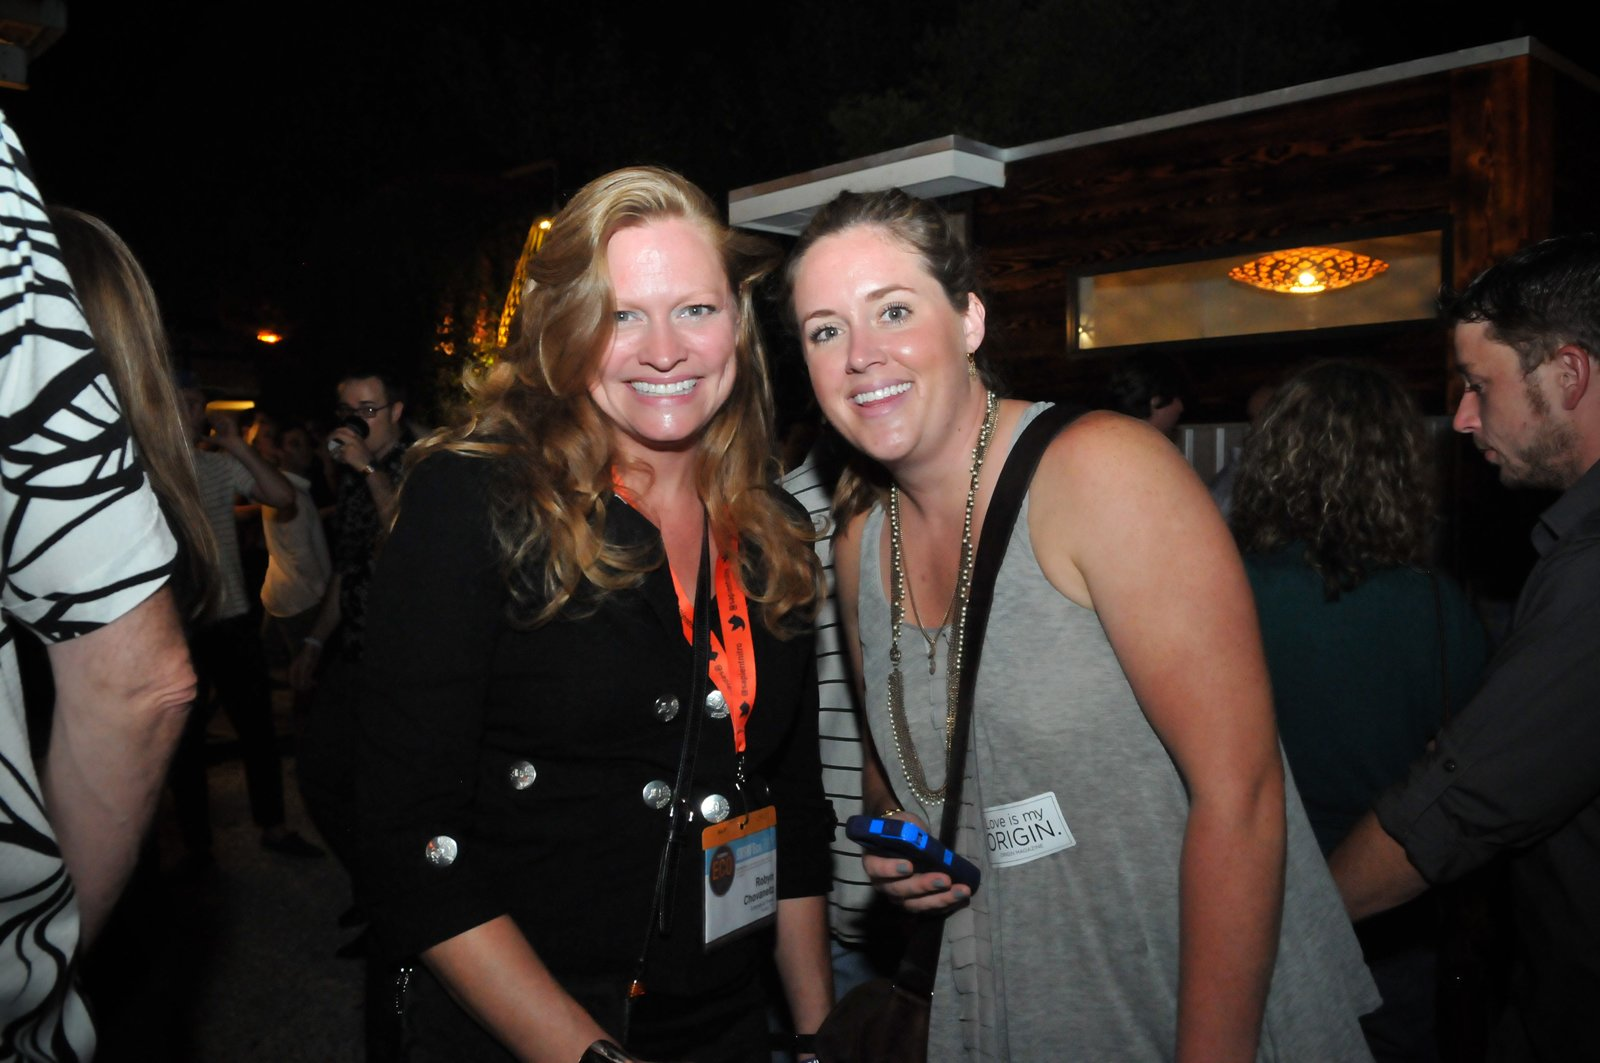 Two happy SXSW Eco attendees smile for the camera.  Photo 8 of 20 in Dwell Party Highlights: Celebrating Prefab Design at SXSW Eco